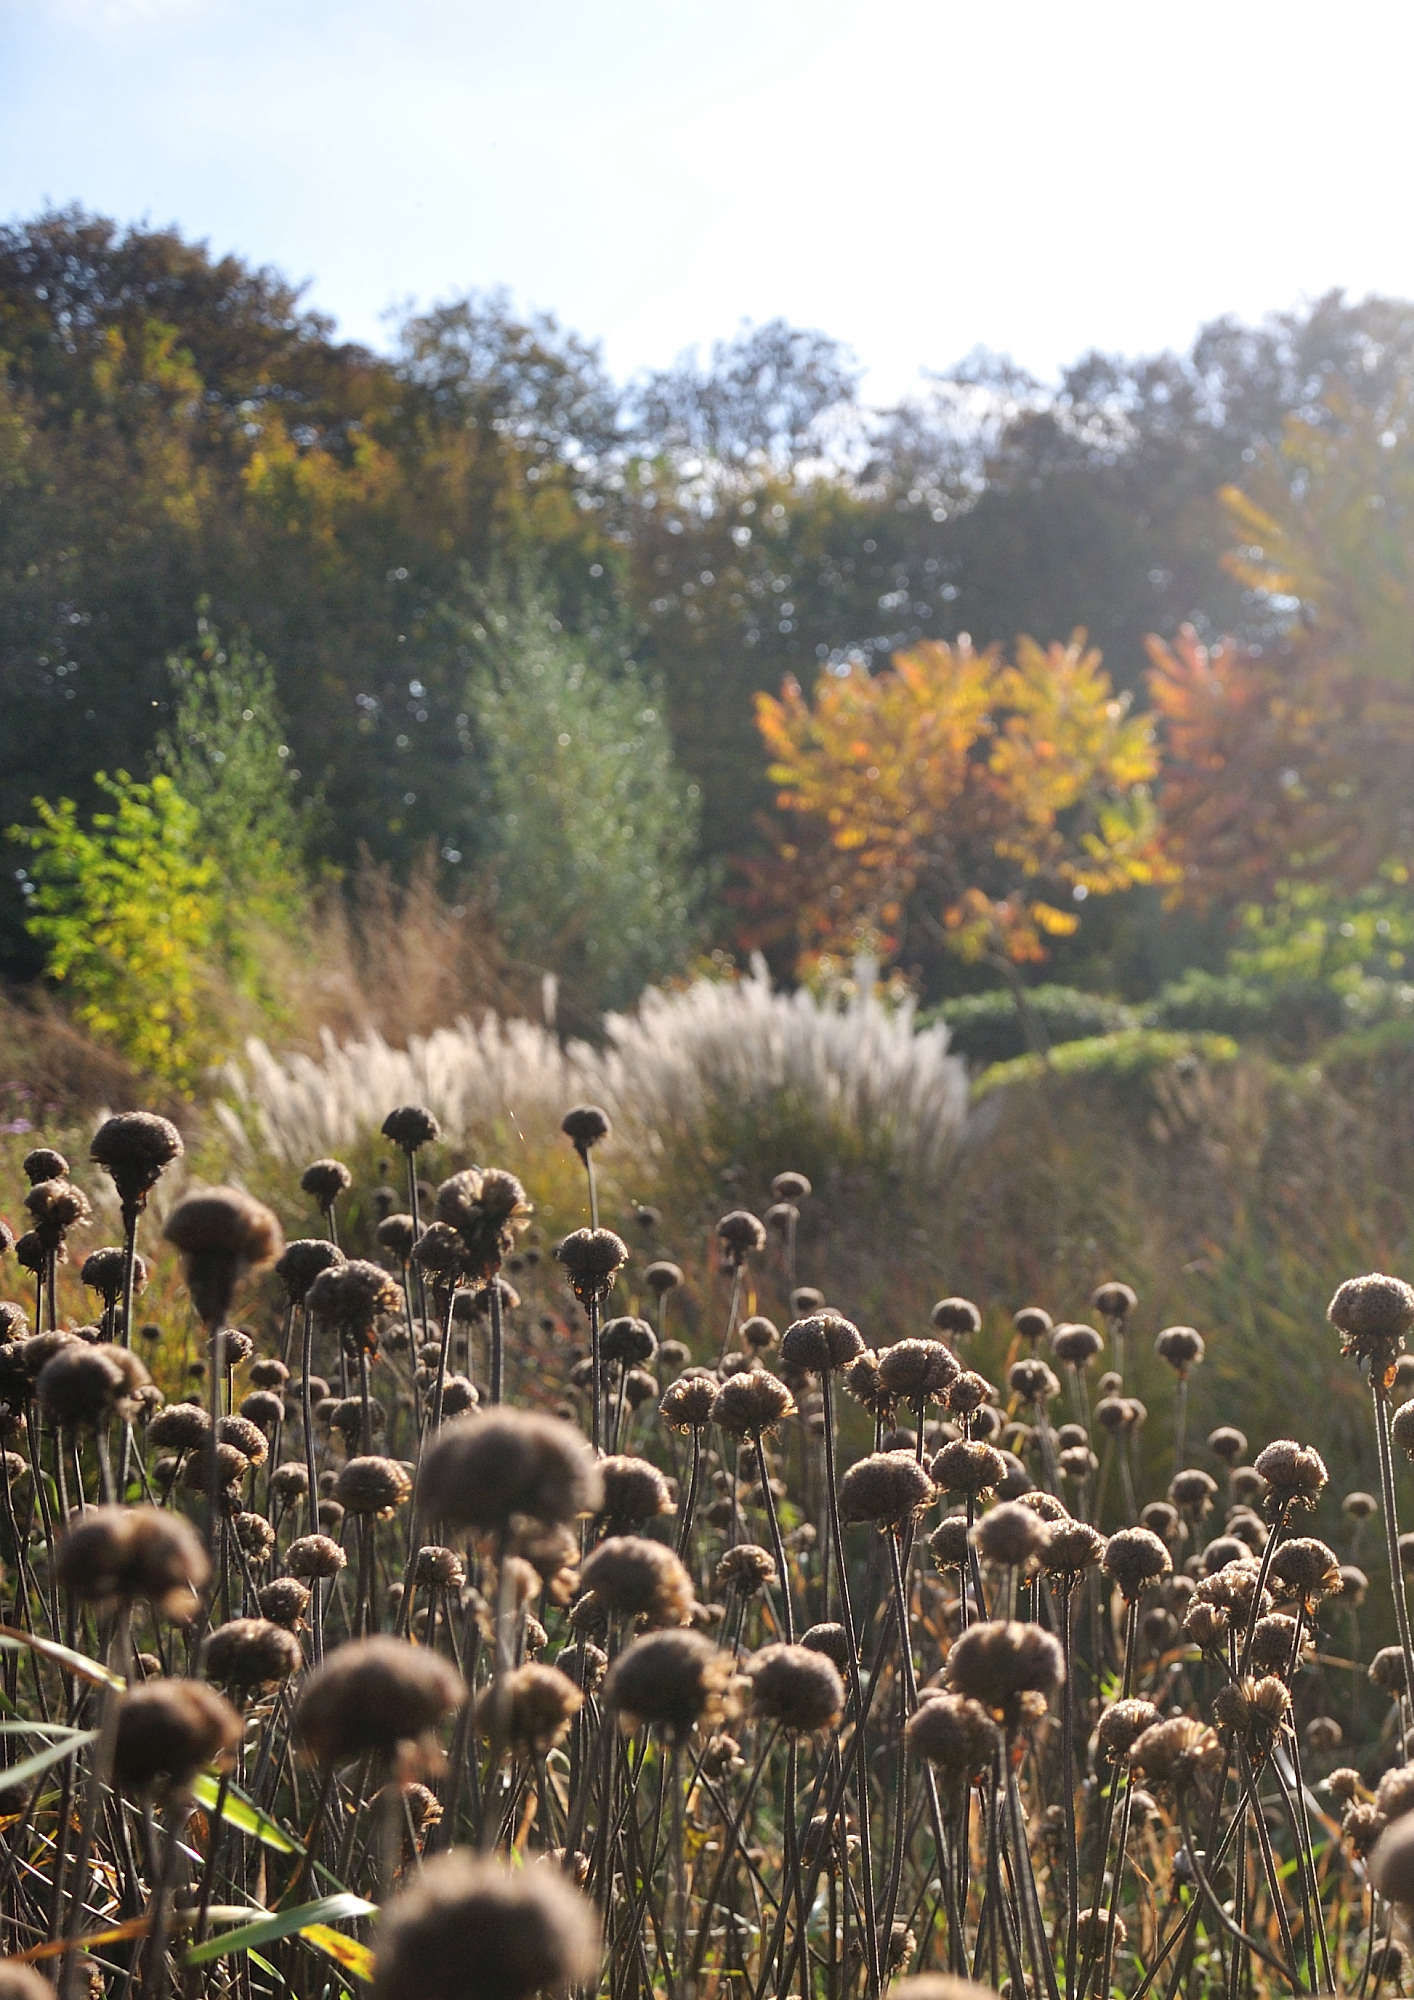 Like spectators at the ballet, crowds of Monarda 'Croftway Pink' seedheads watch a changing fall landscape.